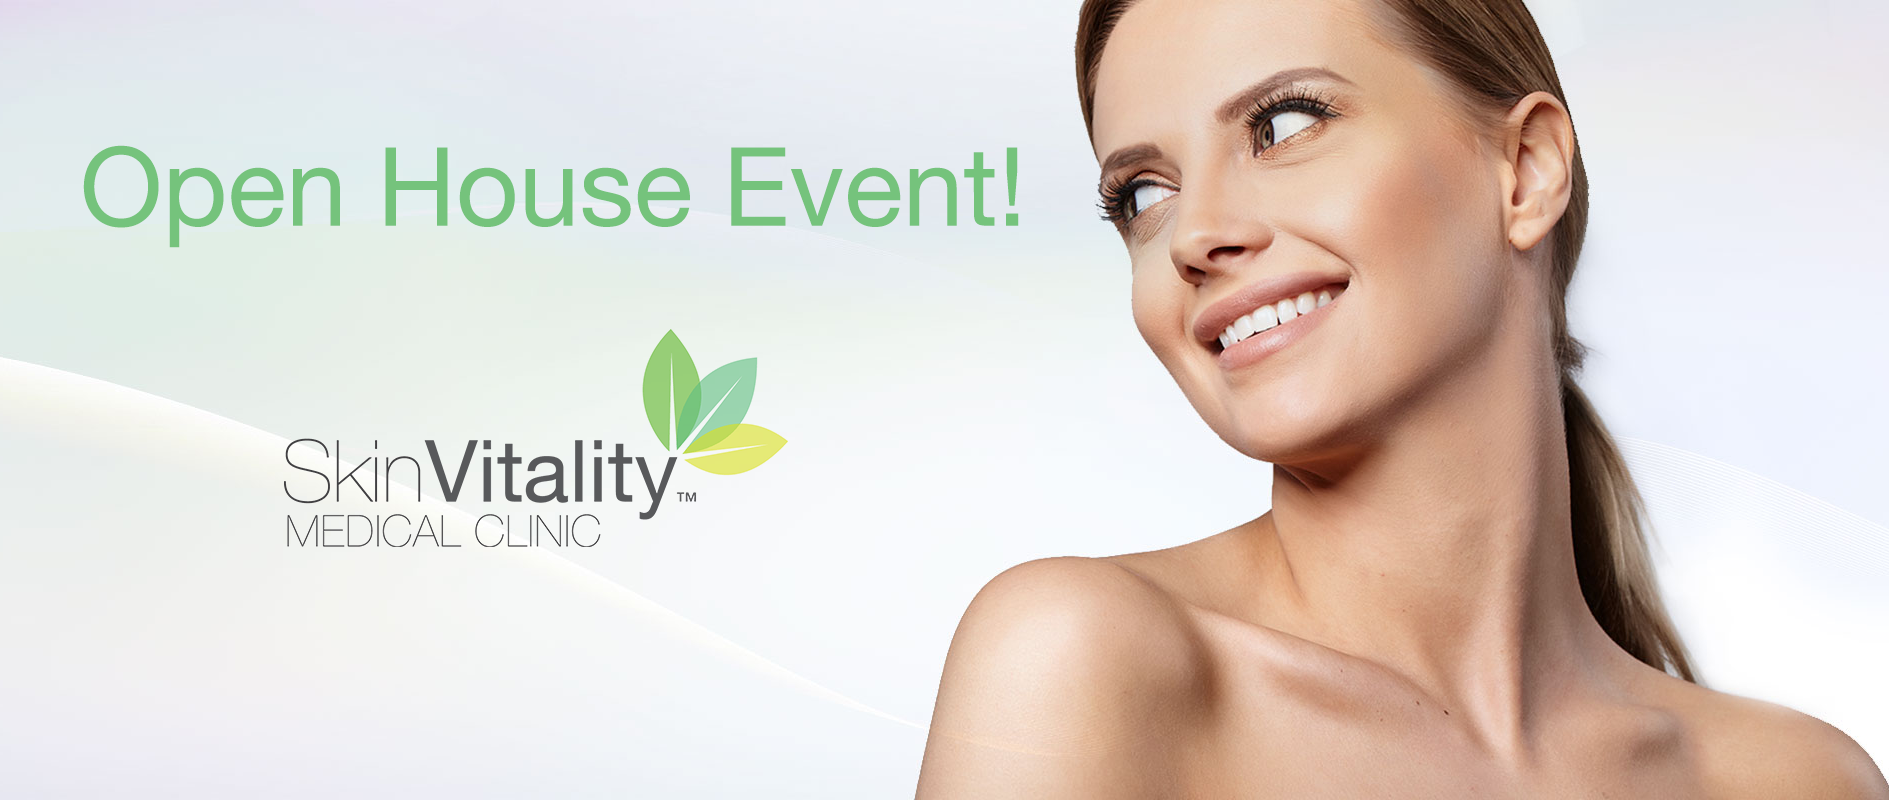 Open House event at Skin Vitality